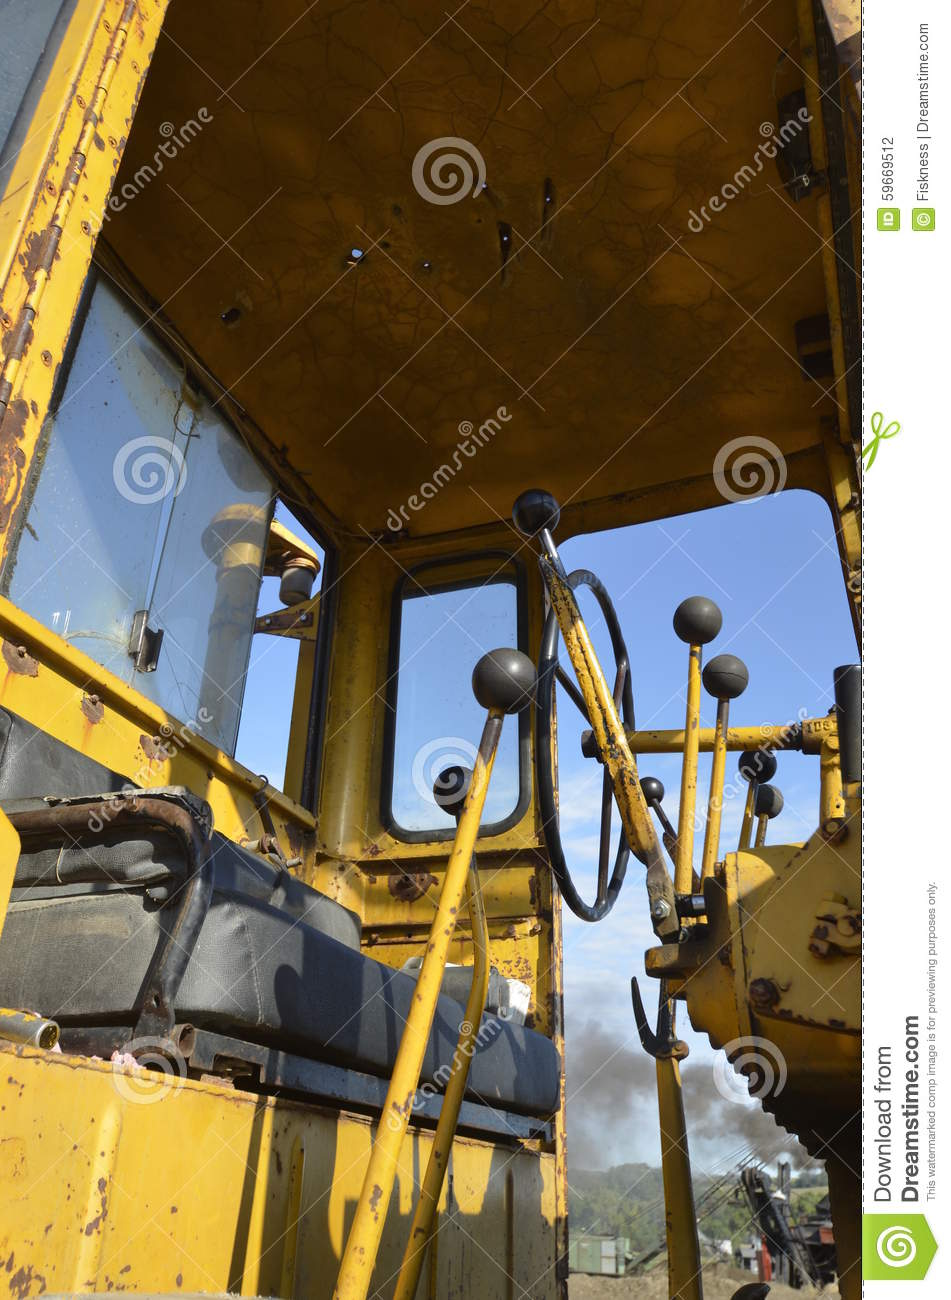 Levers of a road grader stock photo  Image of grader - 59669512